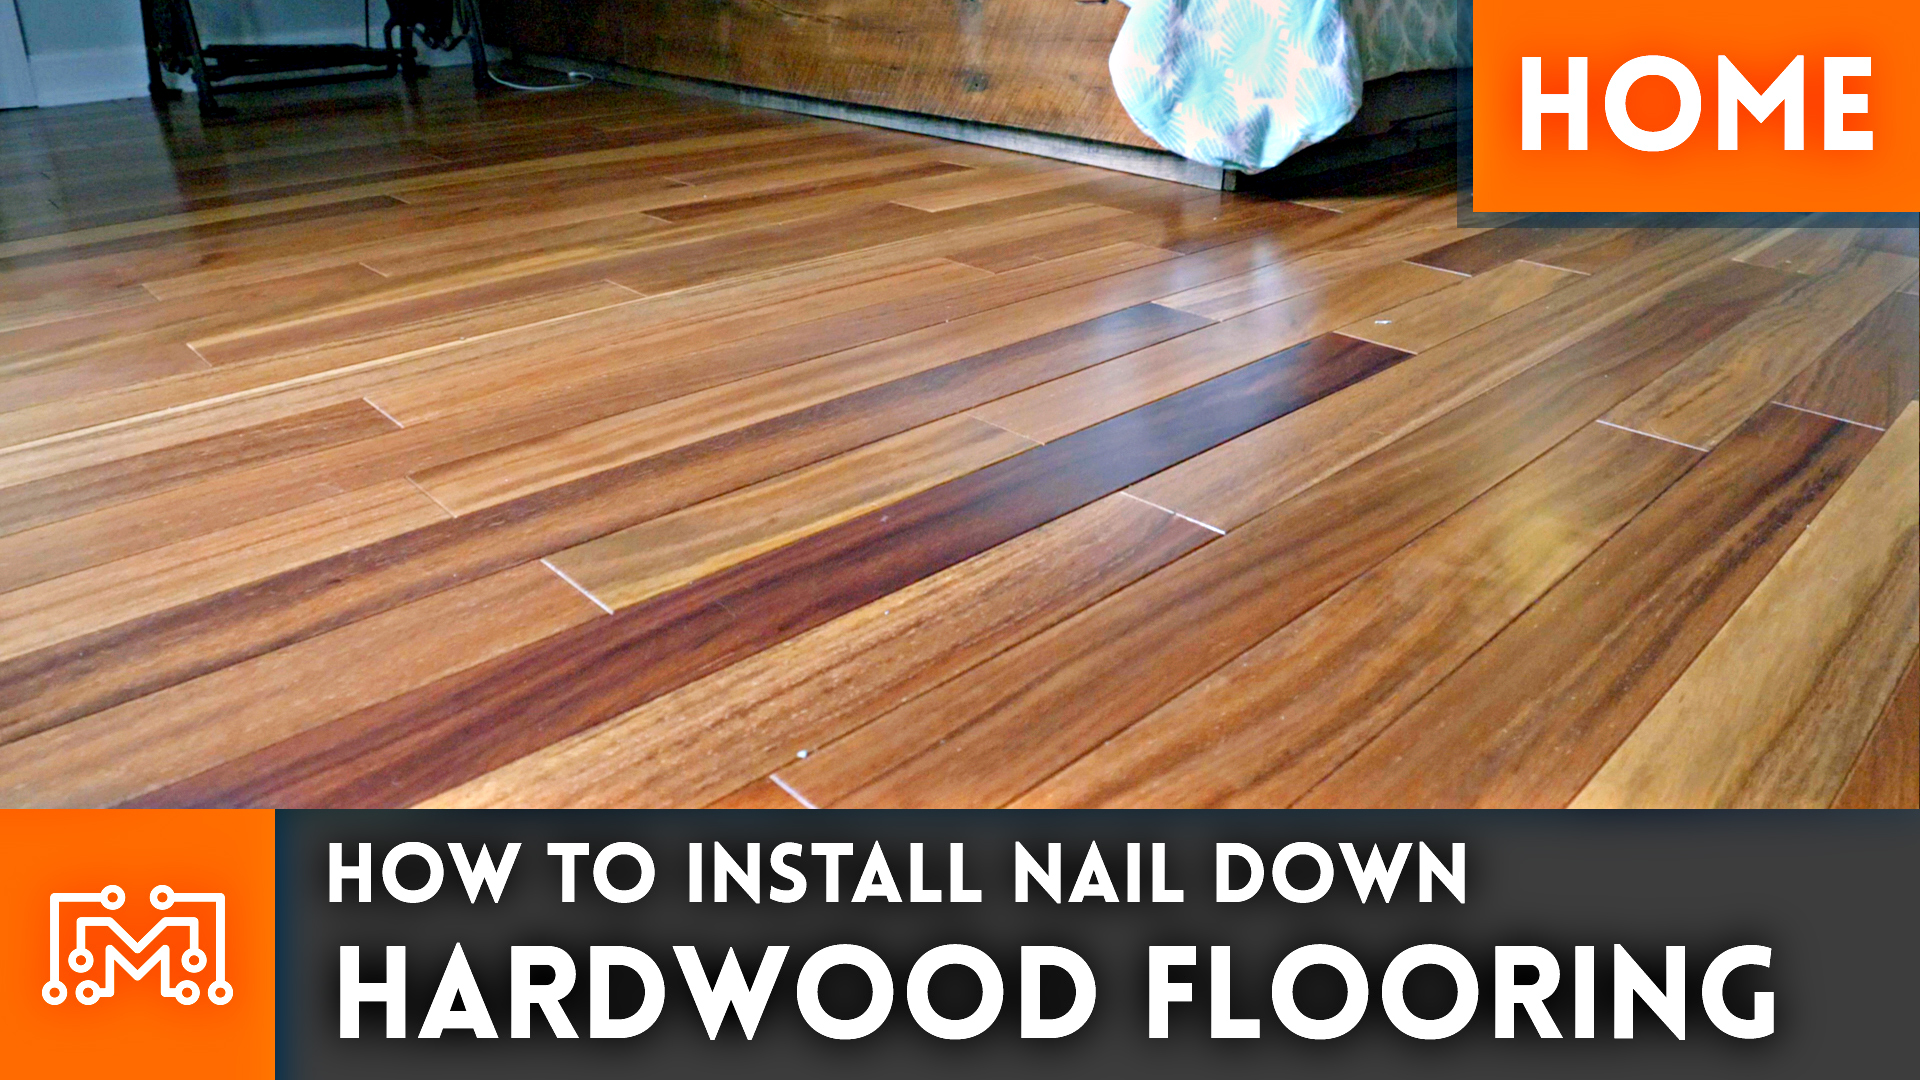 how to install nail down hardwood flooring home renovation i like to make stuff. Black Bedroom Furniture Sets. Home Design Ideas